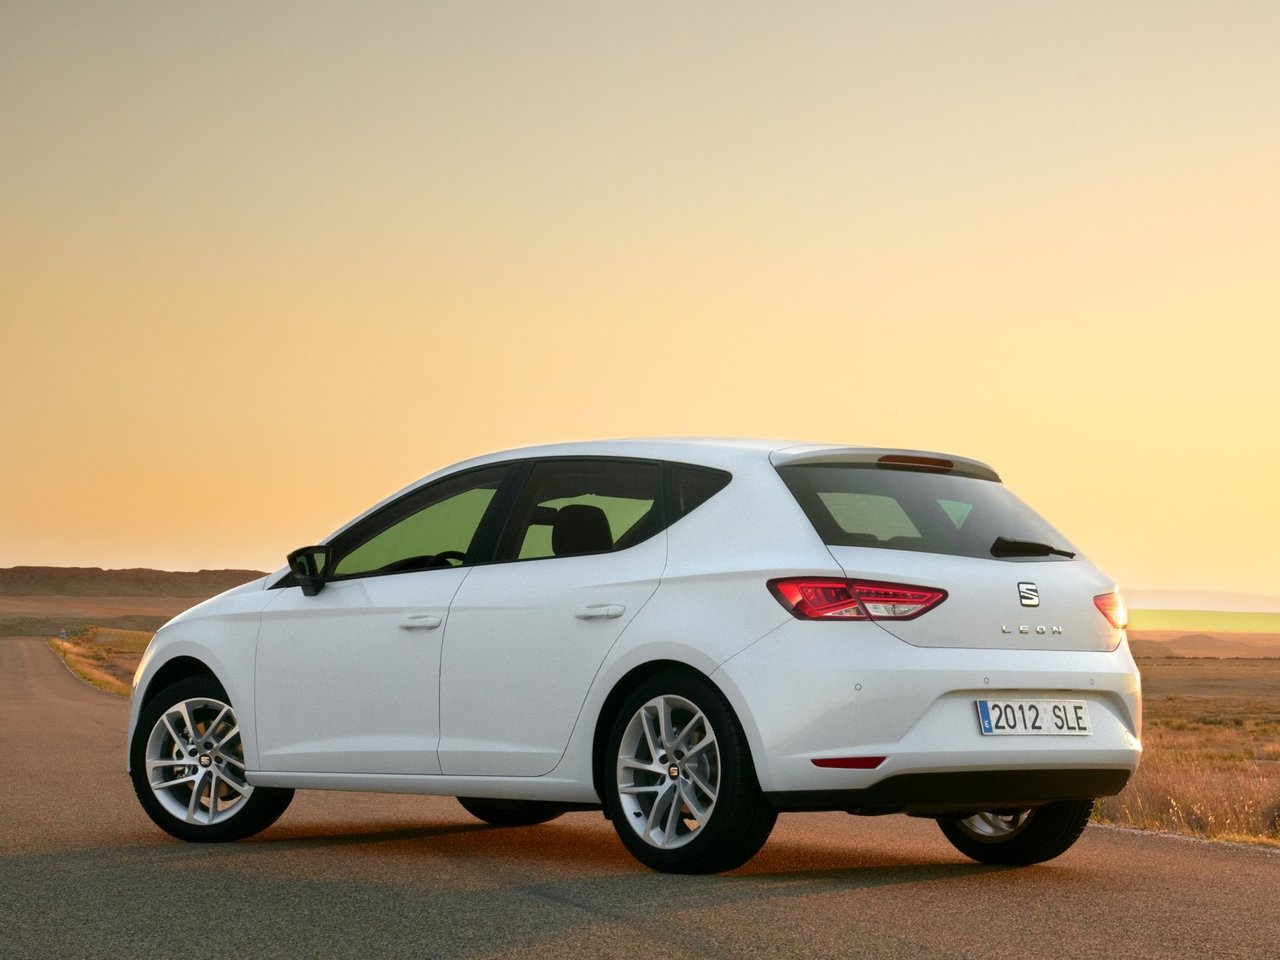 seat leon technical specifications and fuel economy. Black Bedroom Furniture Sets. Home Design Ideas